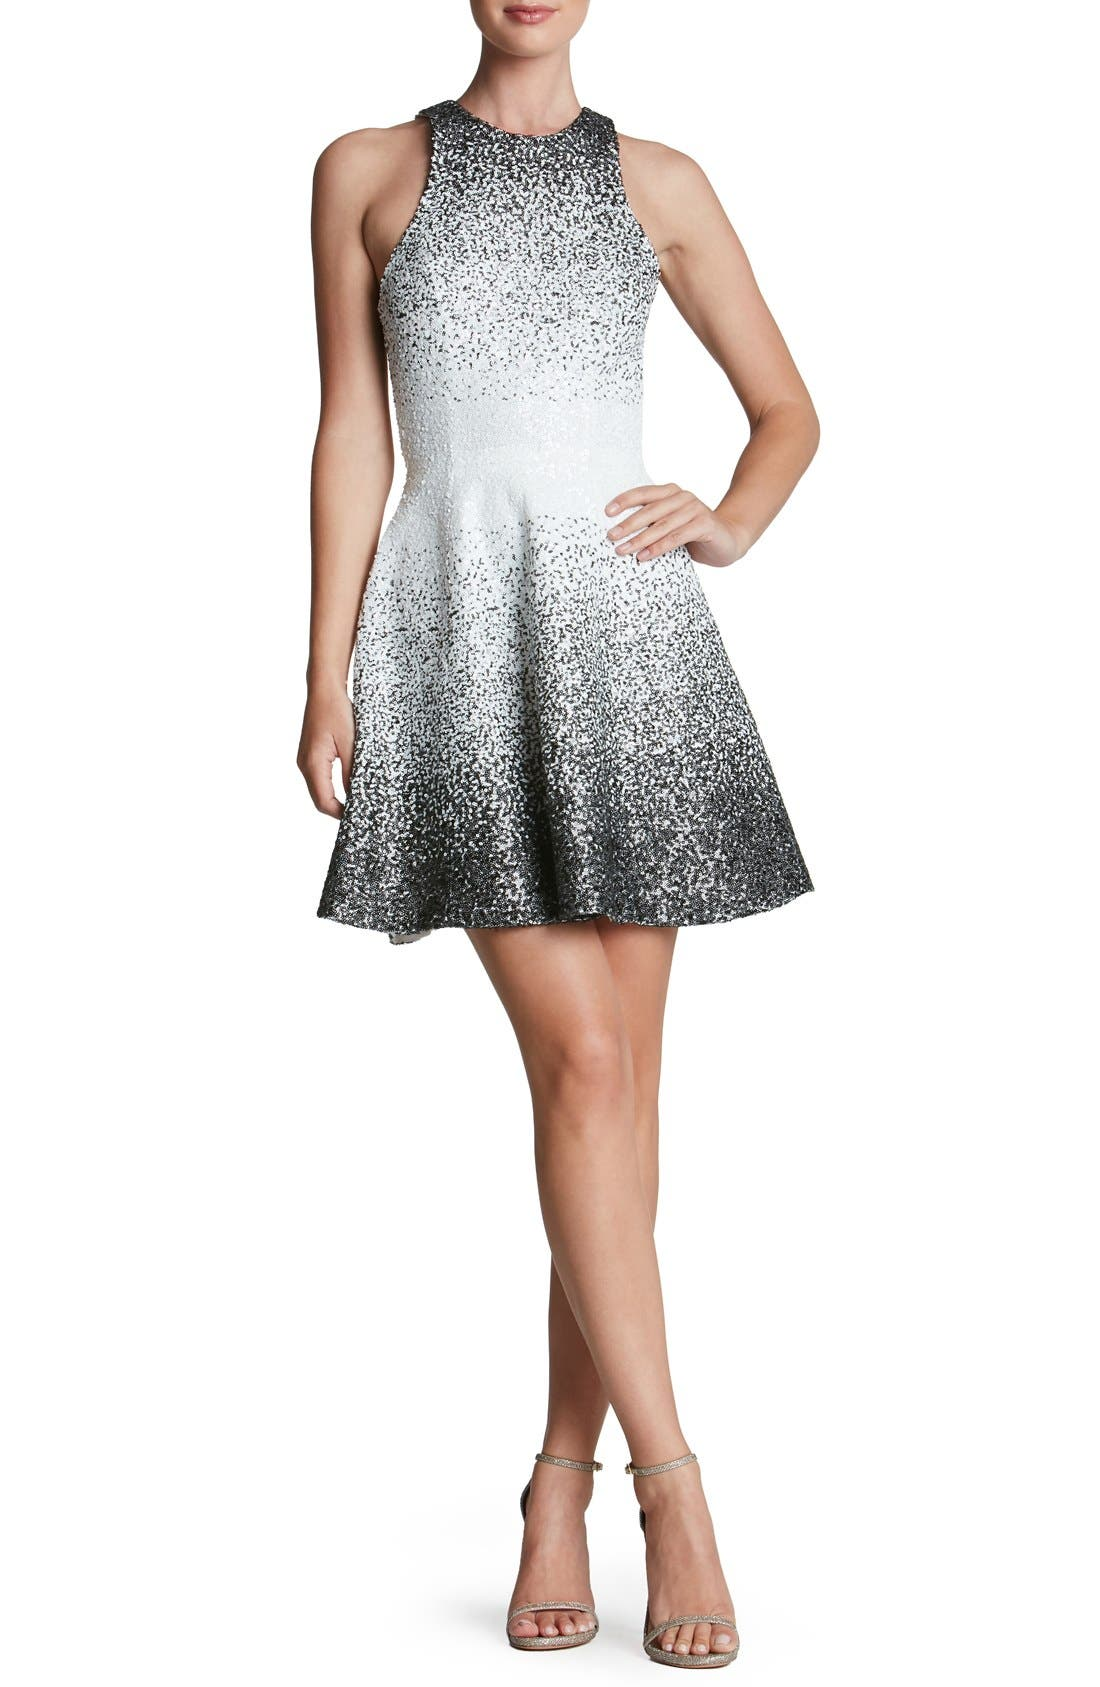 Alternate Image 1 Selected - Dress the Population 'Andi' Sequin Fit & Flare Minidress